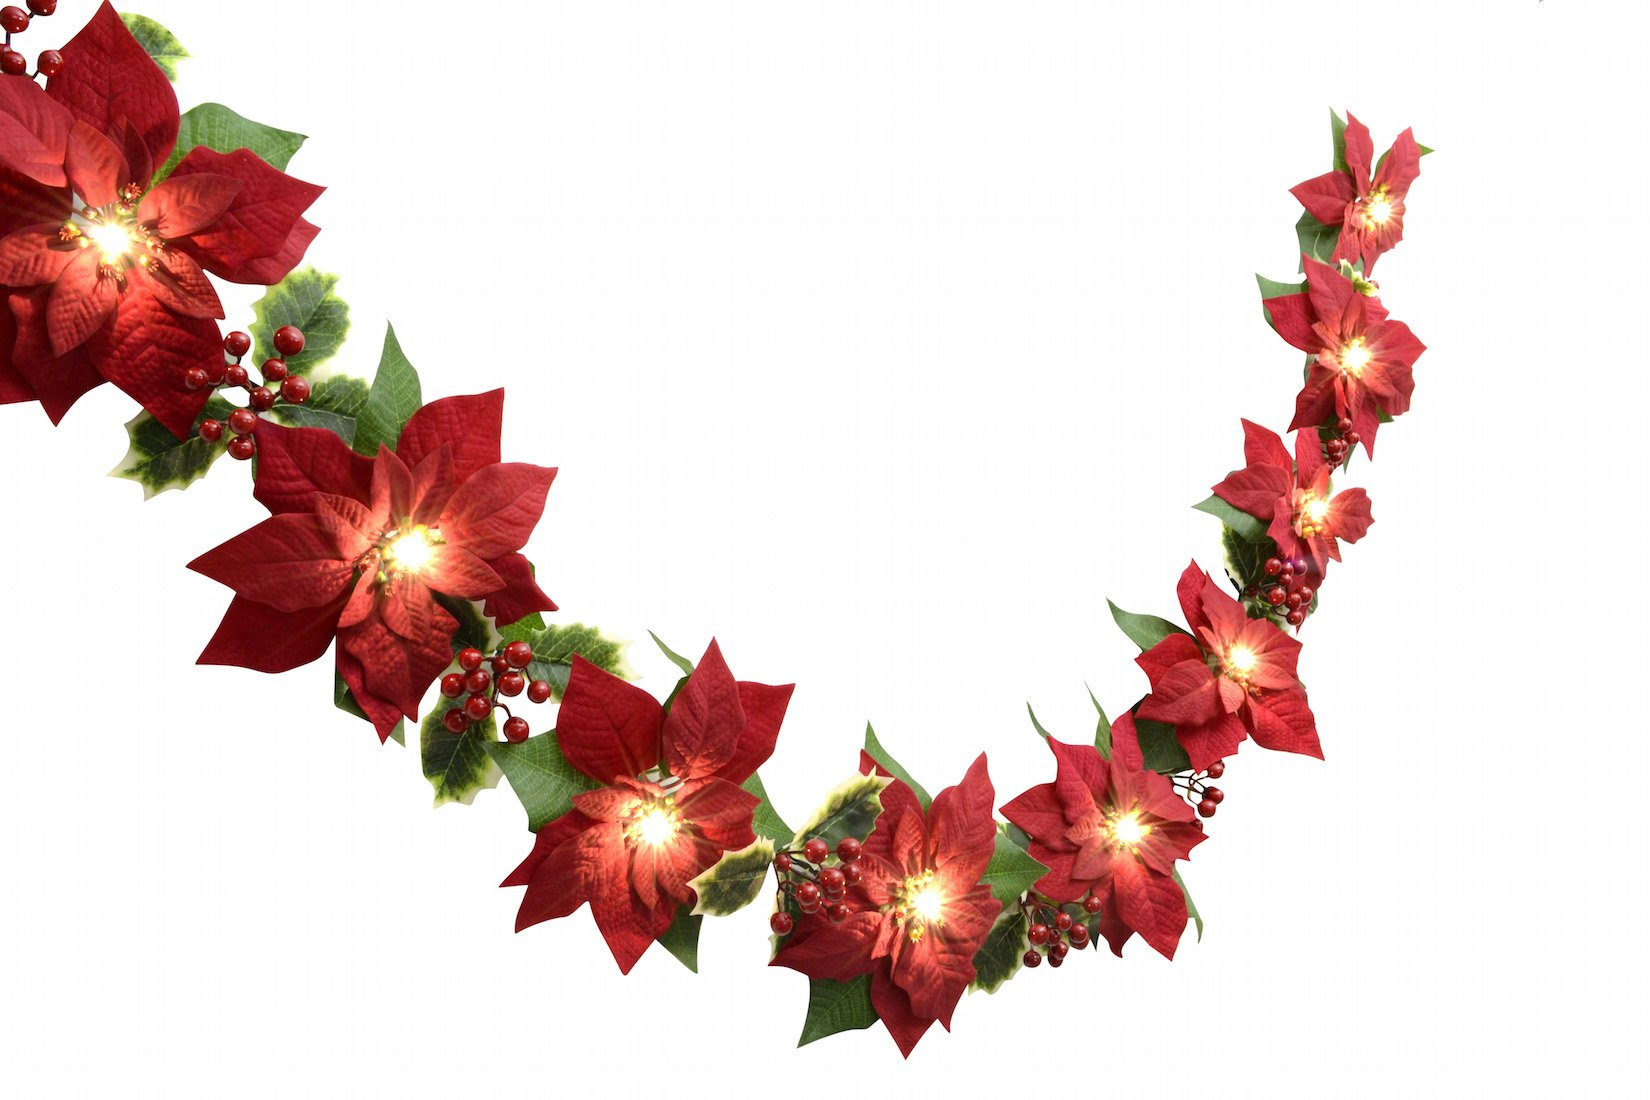 Homeseasons LED Lighted Red Poinsettia Garland with Holly Leaves and Red Berries,6 Feet,Perfect Holiday and Christmas Decoration